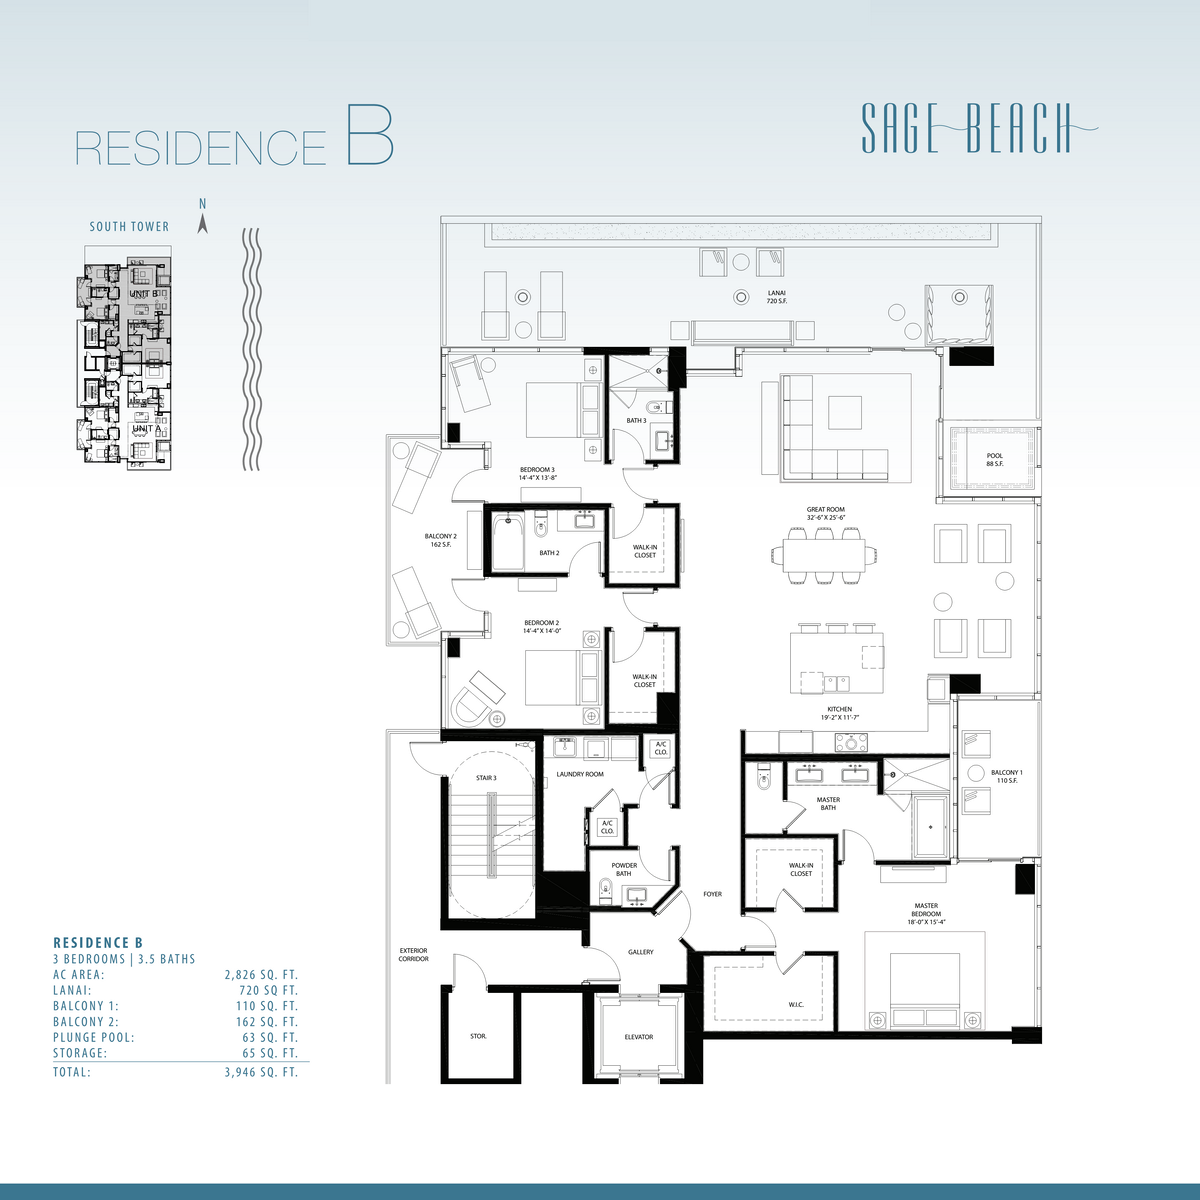 Sage Beach - Floorplan 5